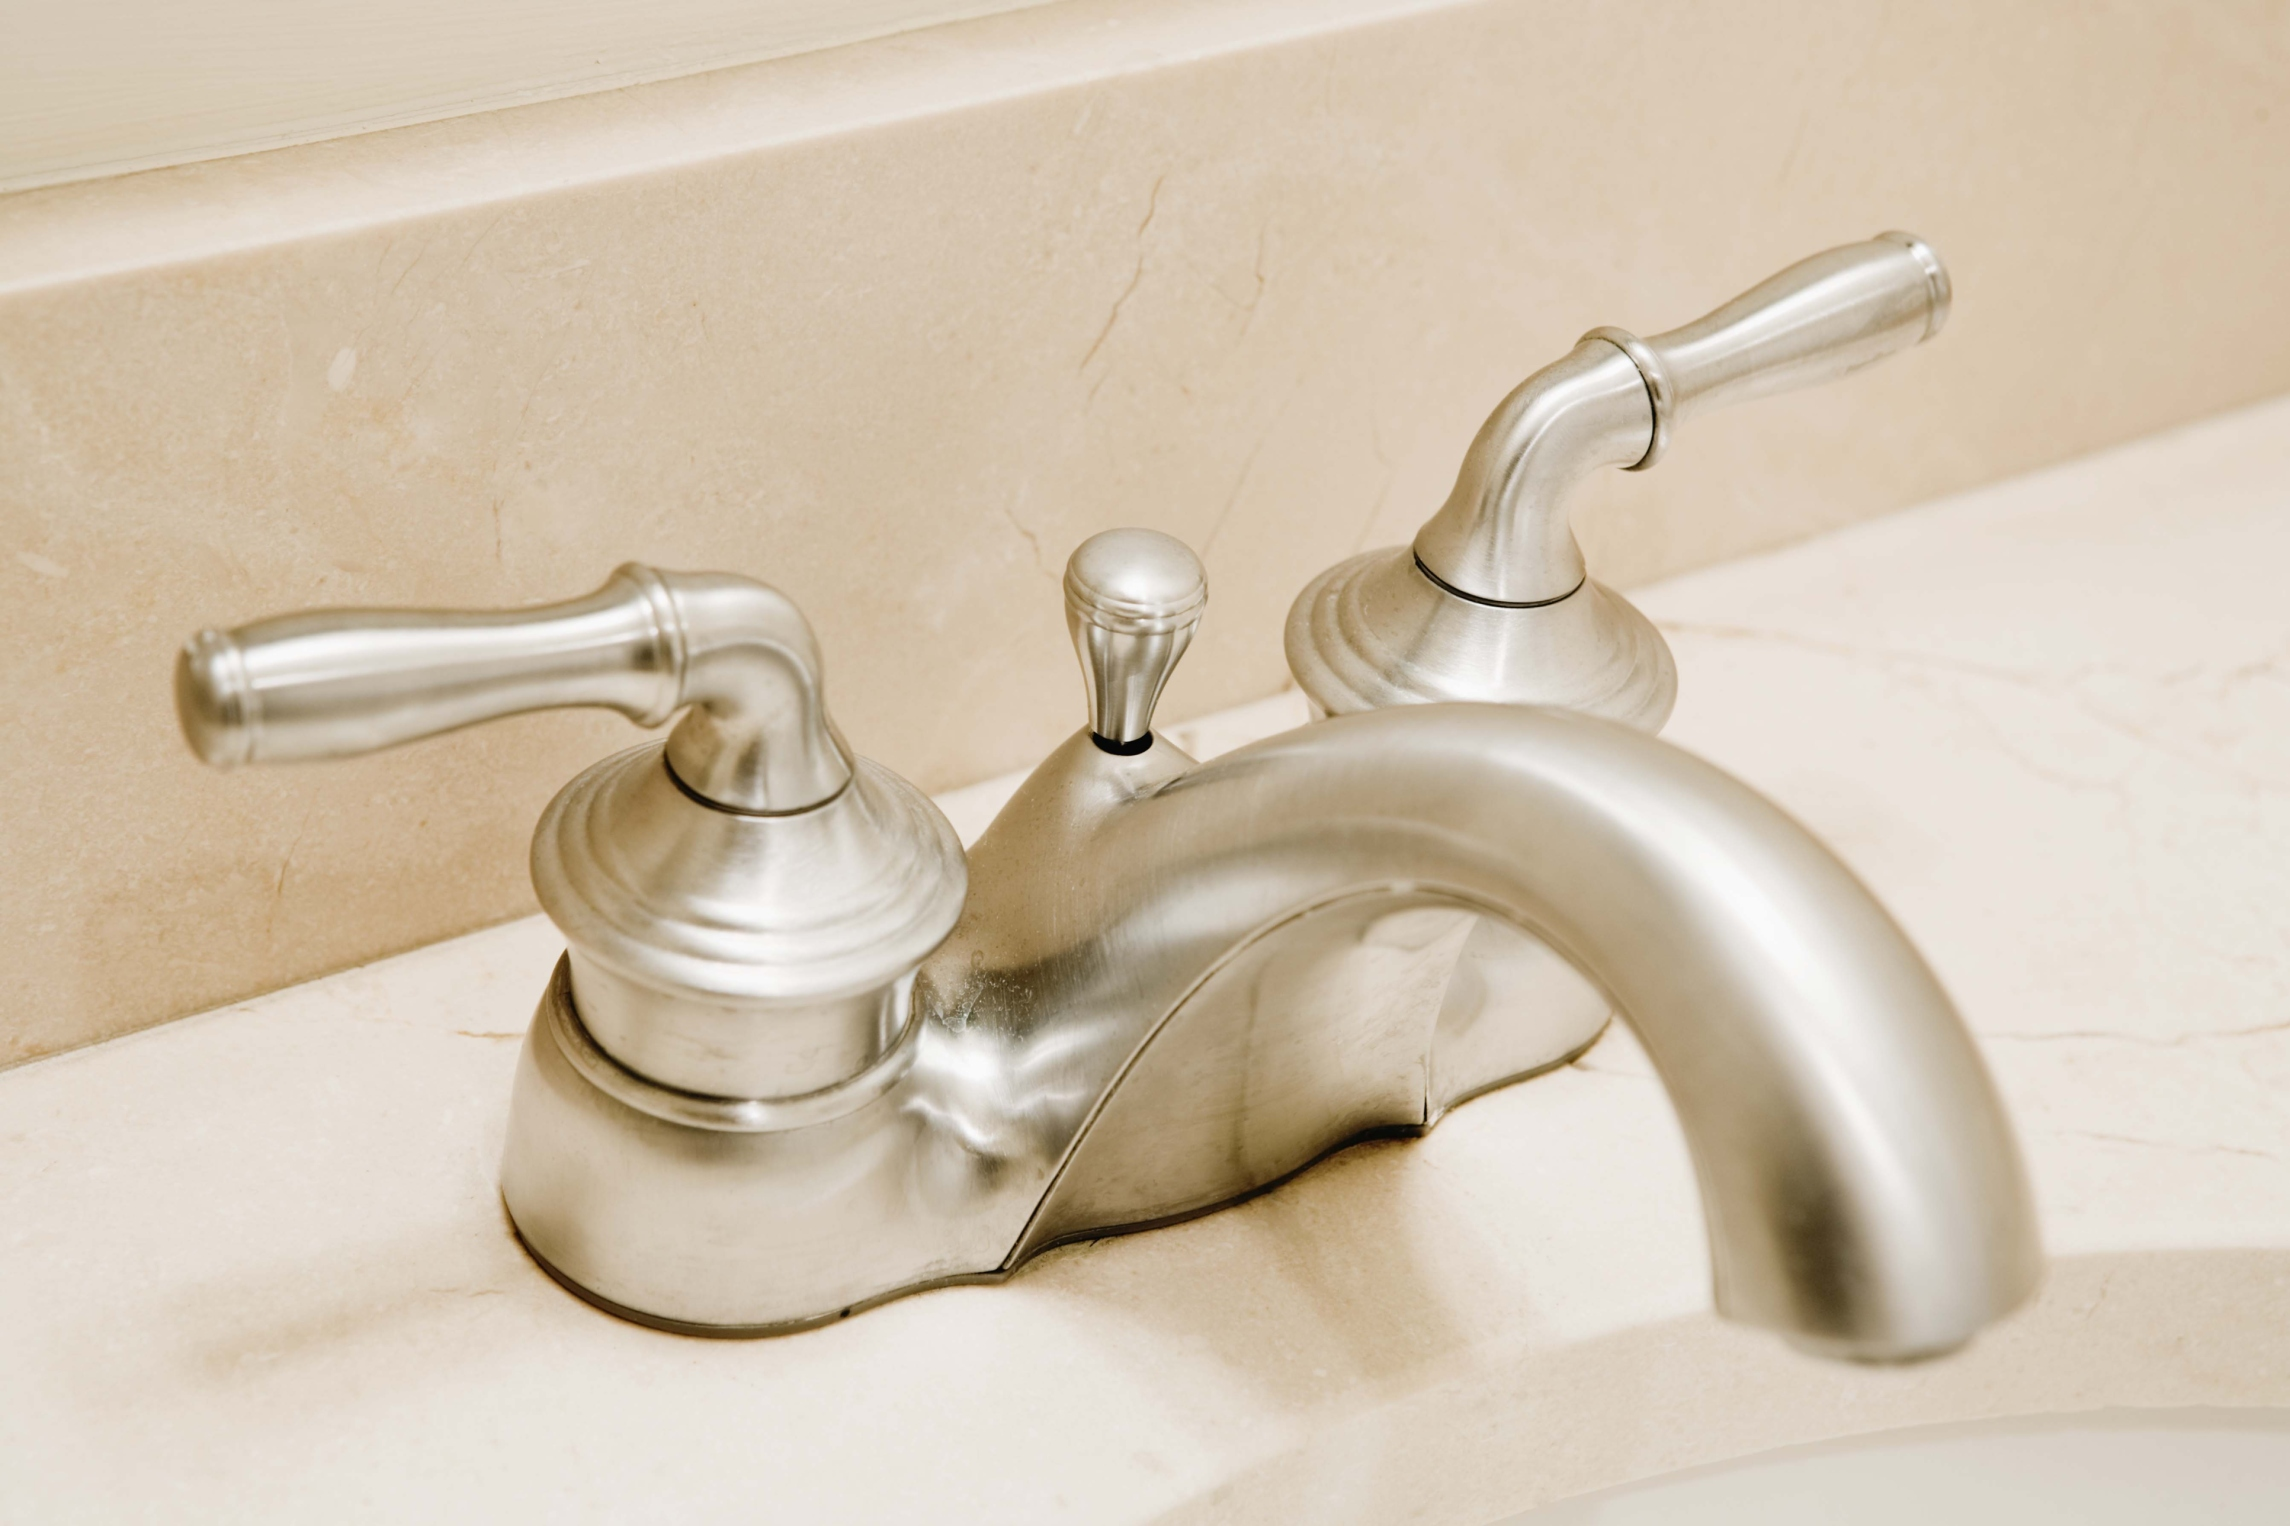 How To Repair Leaks In An American Standard Gooseneck Kitchen Faucet